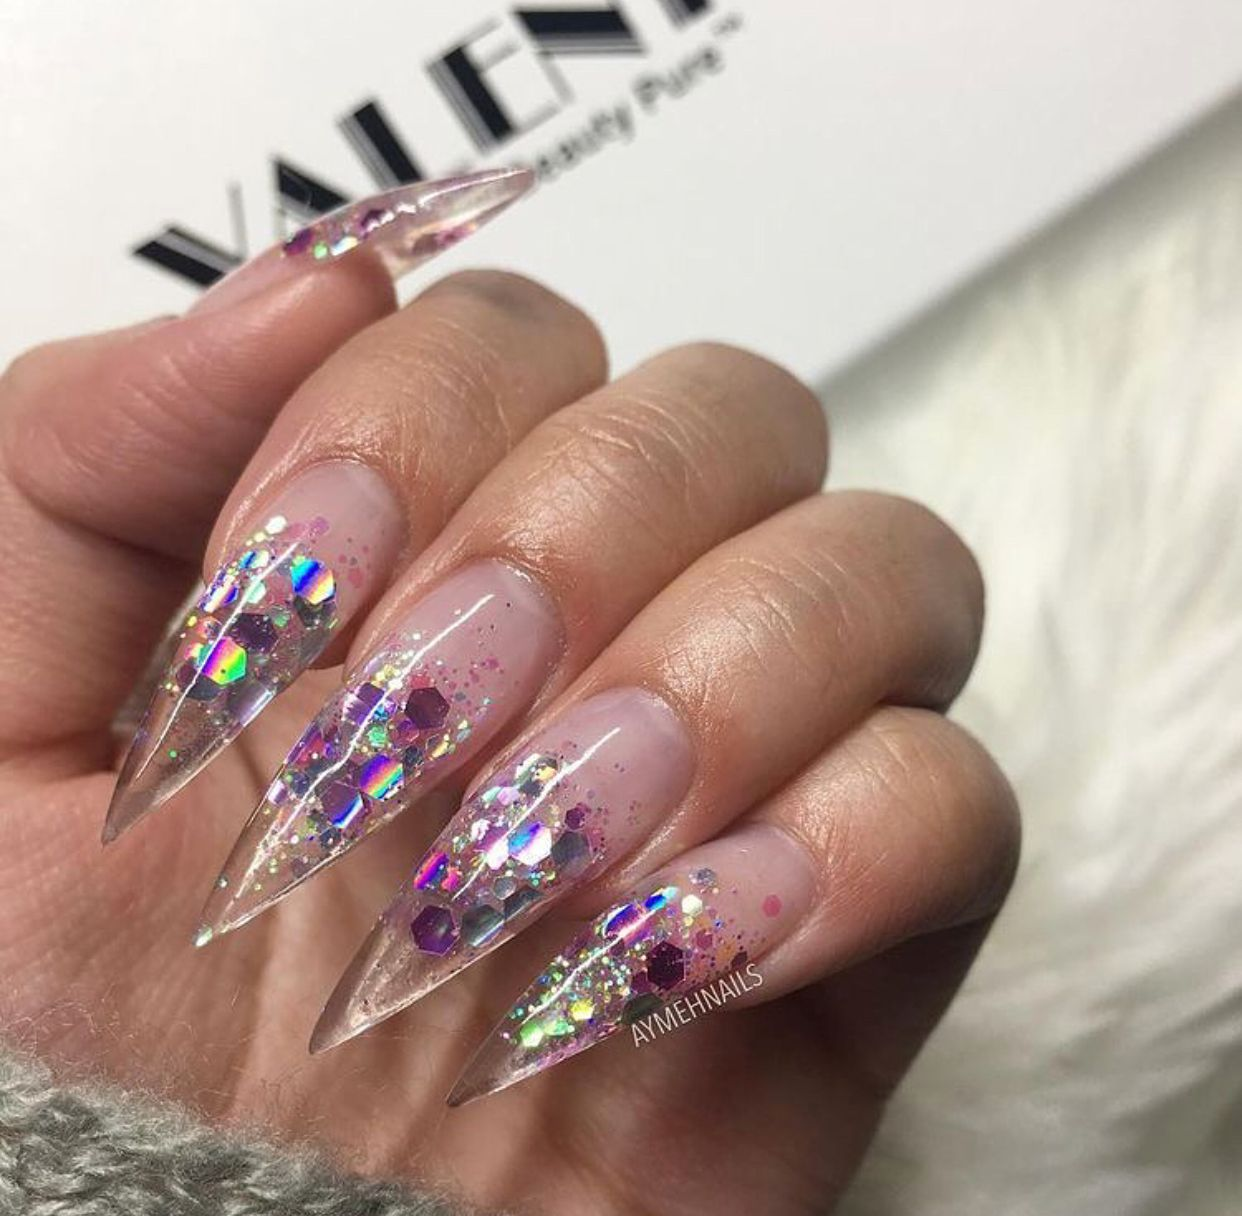 Make It With Me: Silver Stiletto Nails